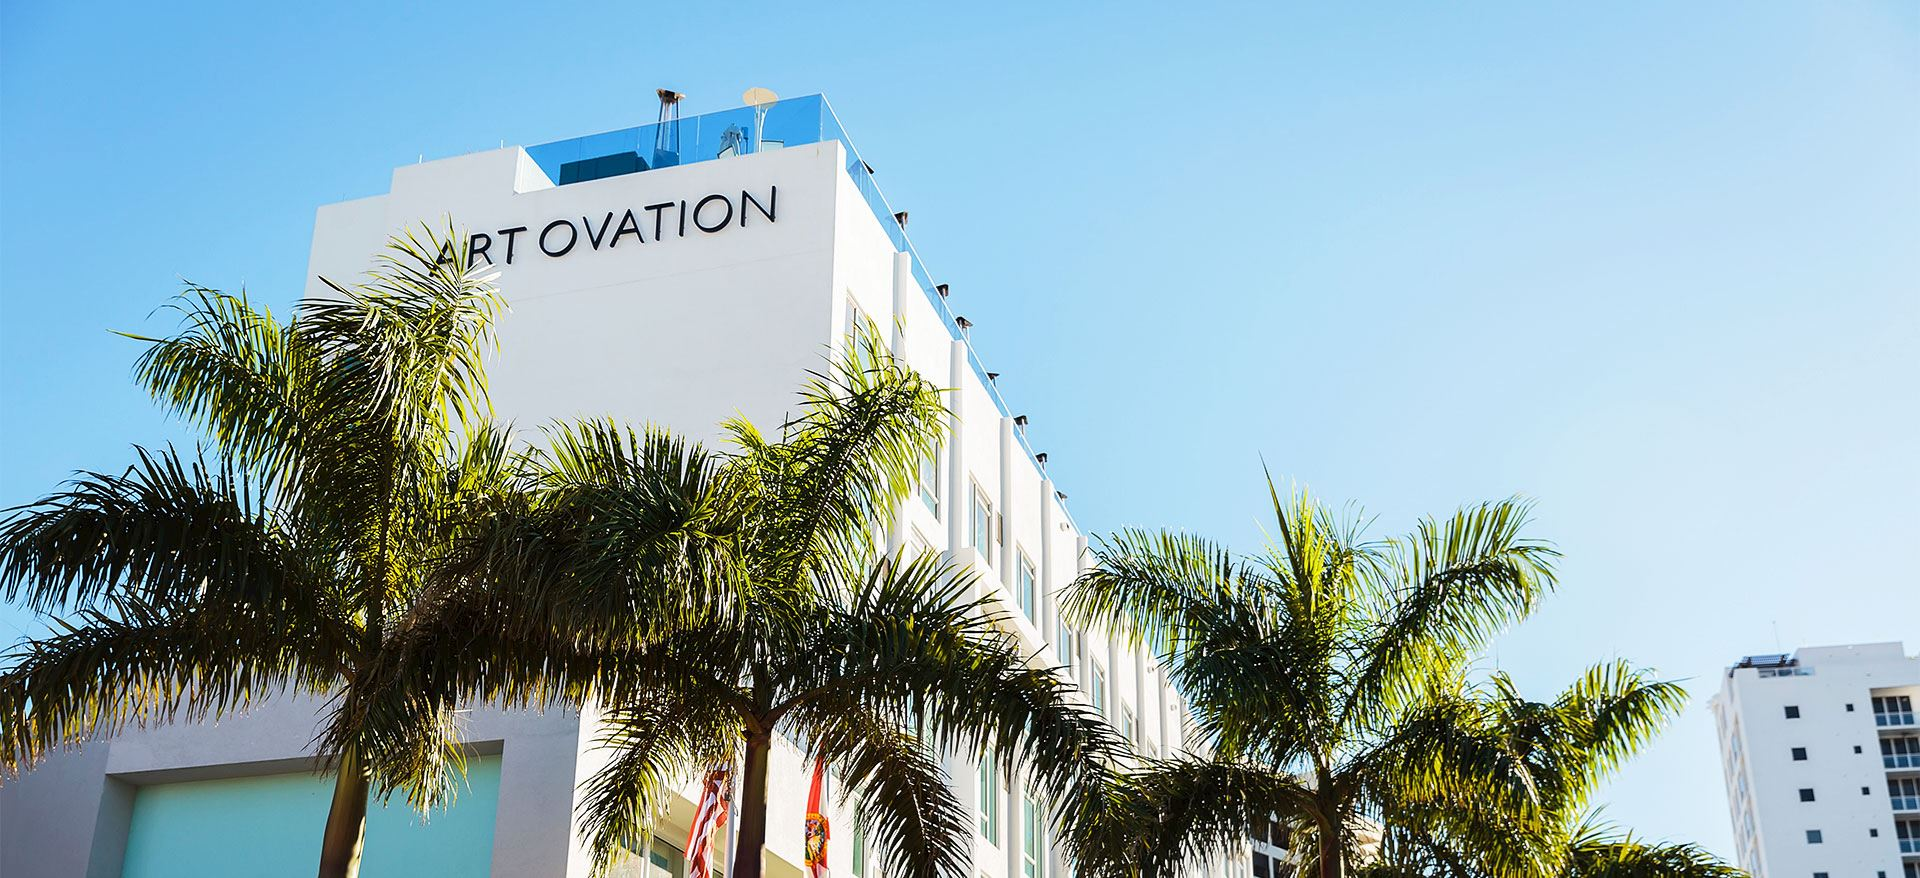 Art Ovation Hotel, Autograph Collection at Sarasota, Florida